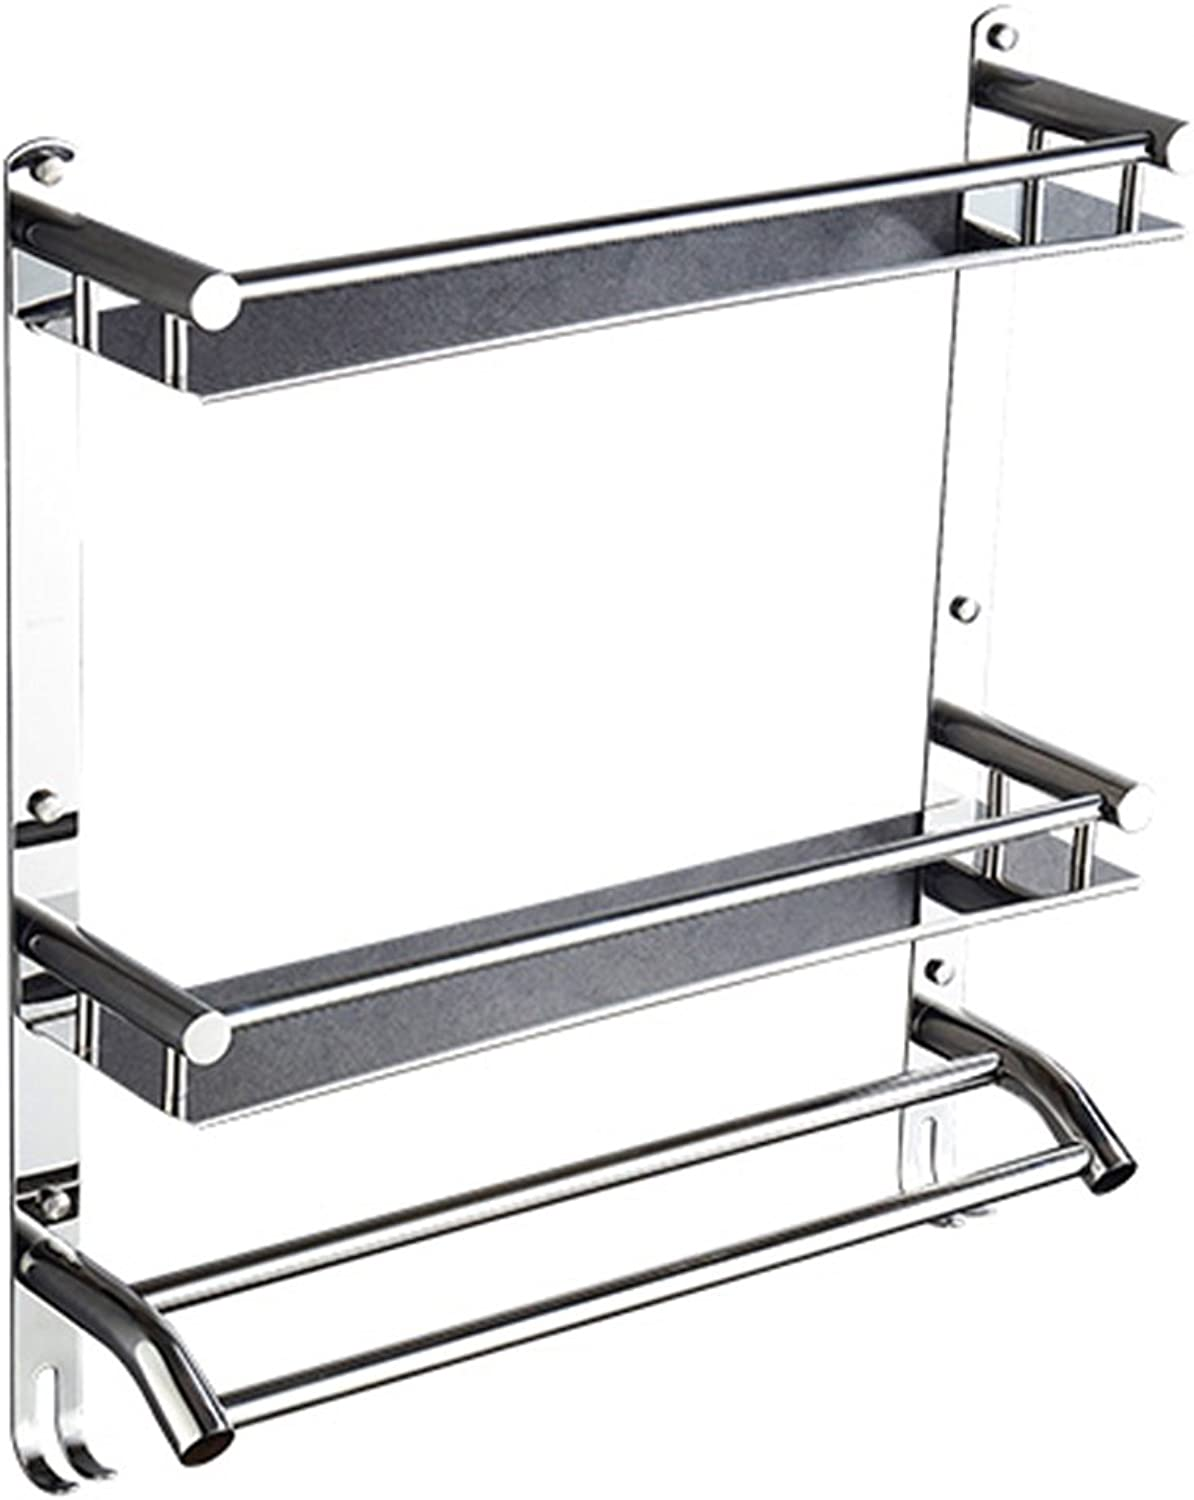 ZHANWEI Bathroom Shelf Shower Organiser Wall-Mounted Stainless Steel Punch Free Glue Hook up Tower Hanger (color   2 Layers, Size   40cm)